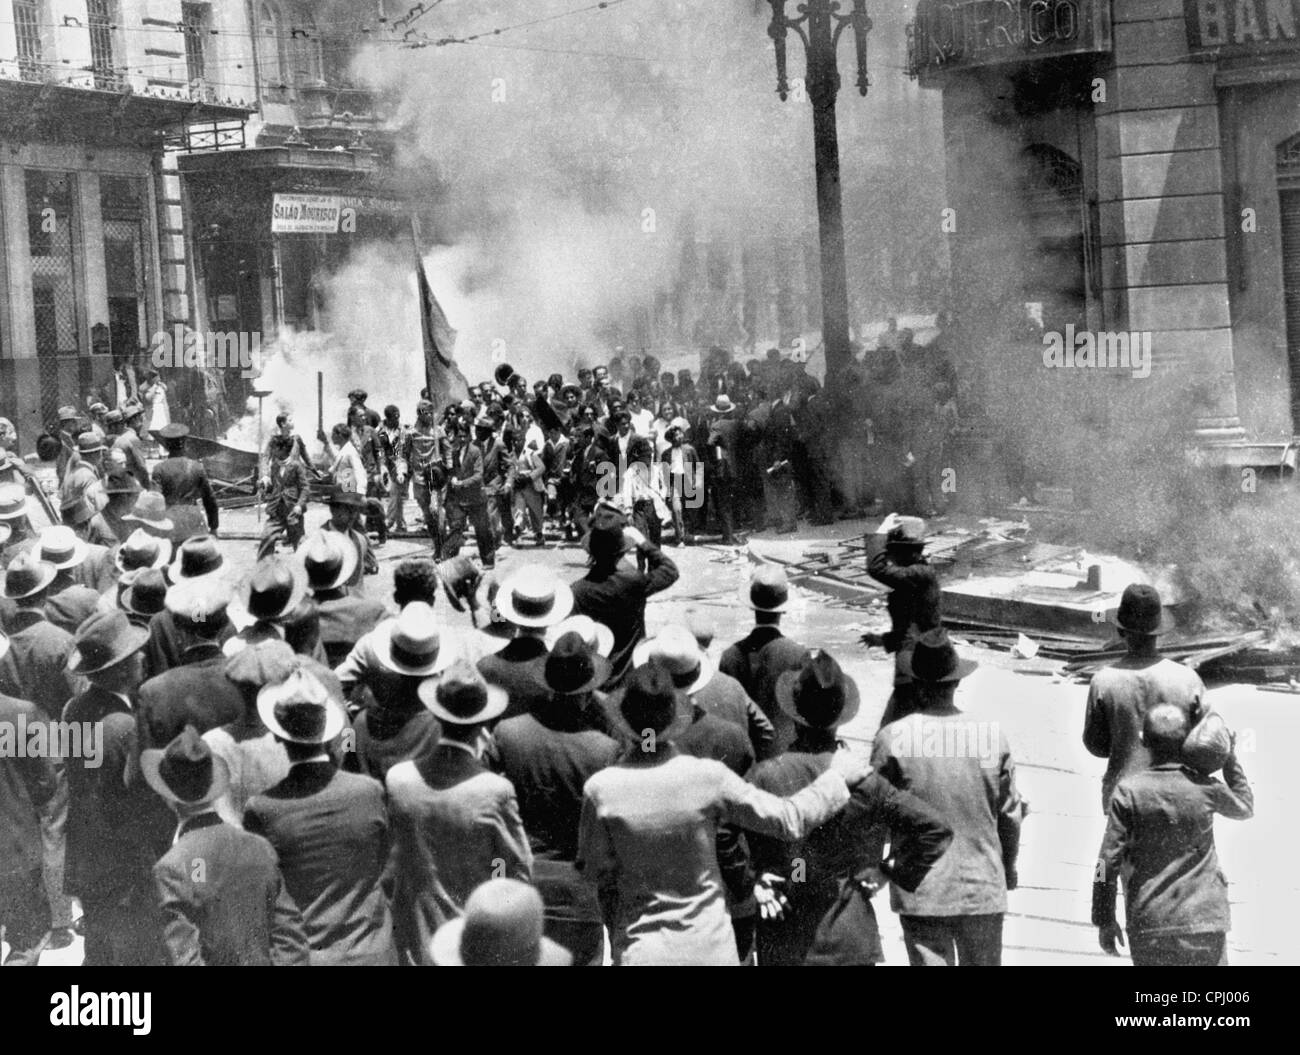 Insurgents set a newspaper publishers on fire, 1930 Stock Photo